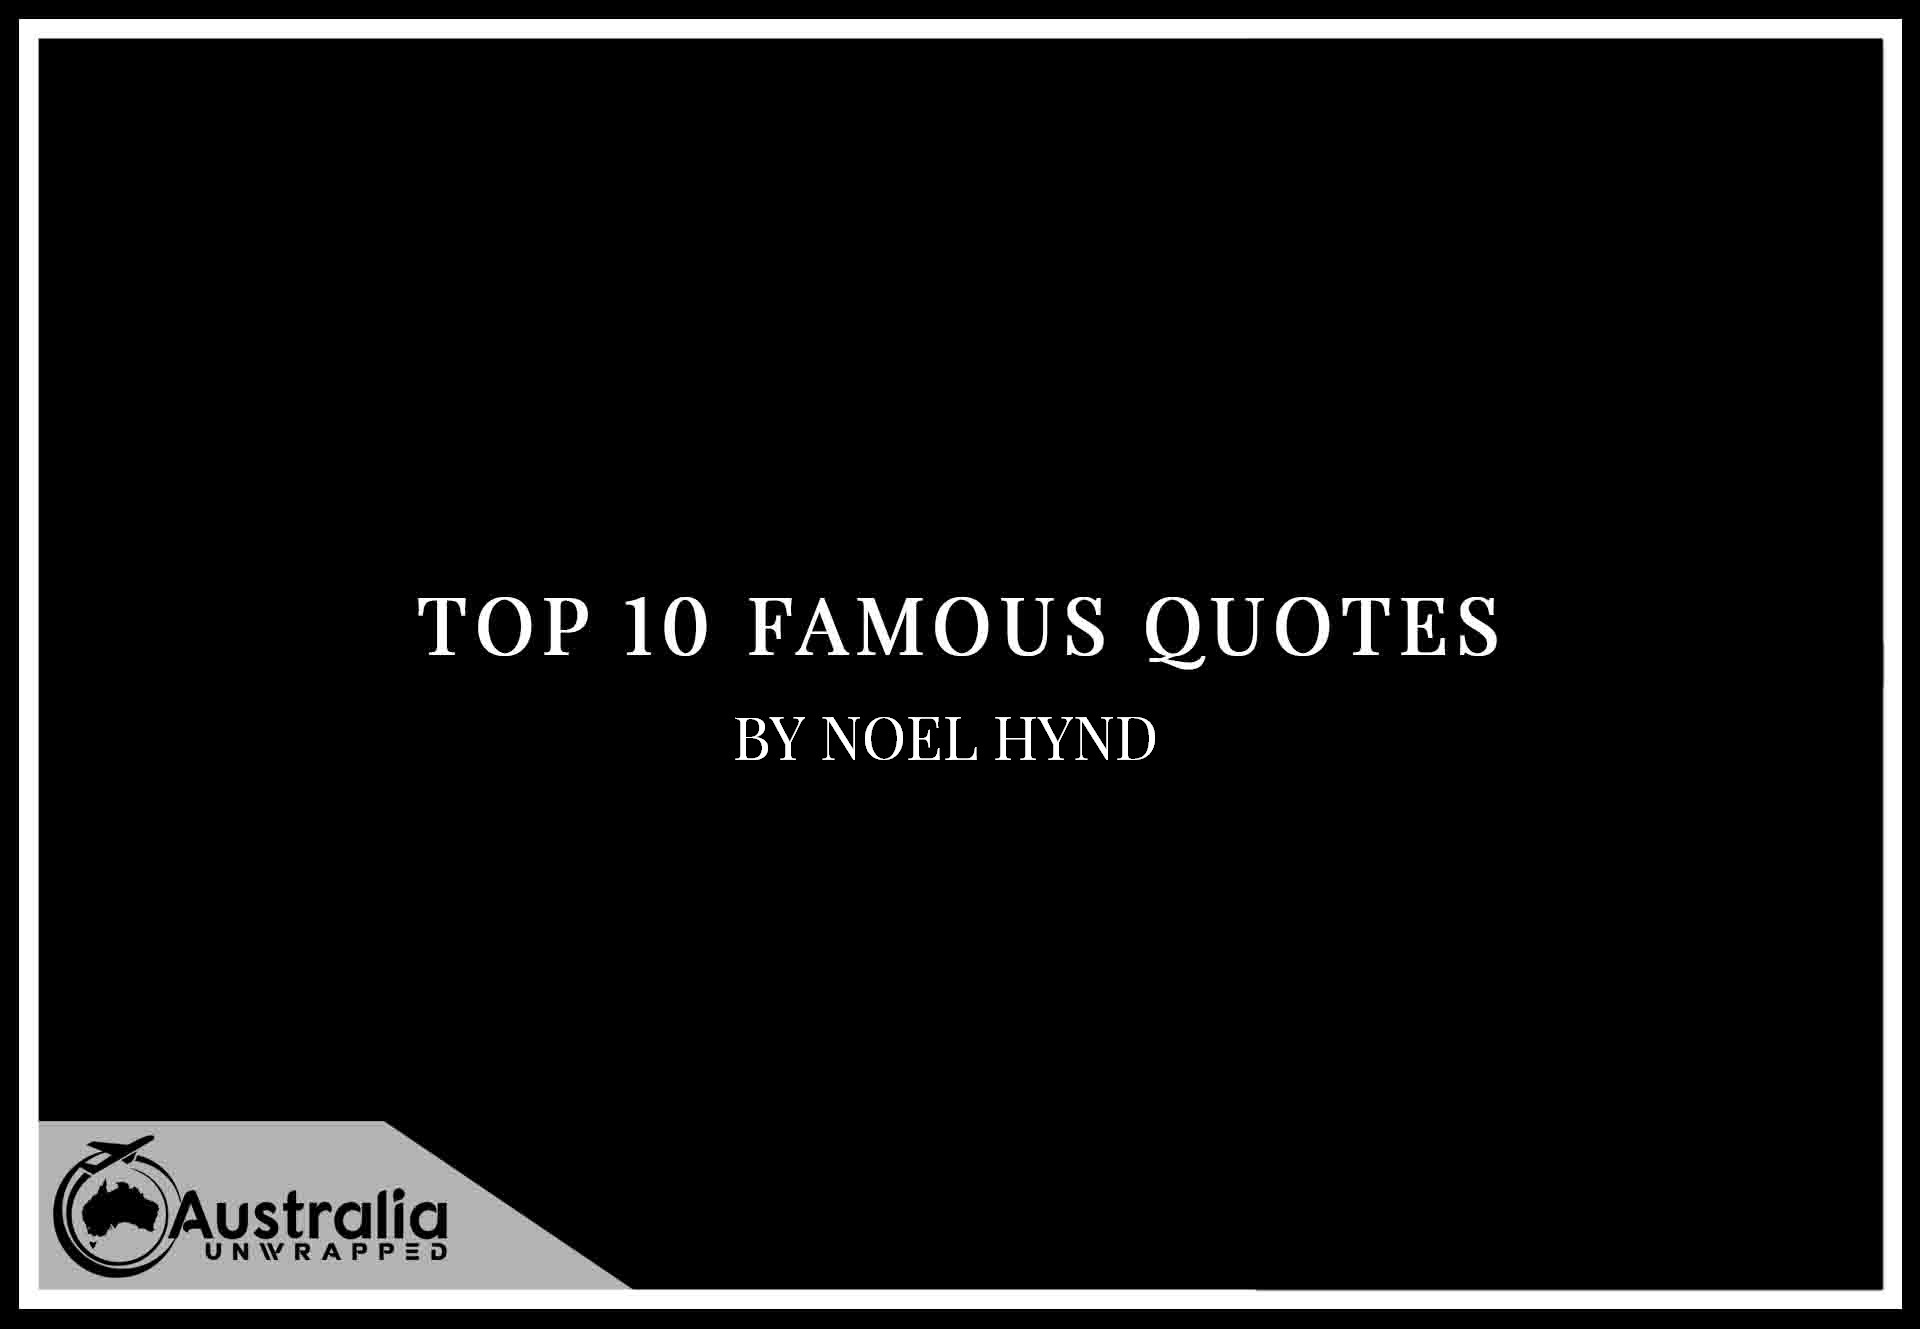 Top 10 Famous Quotes by Author Noel Hynd